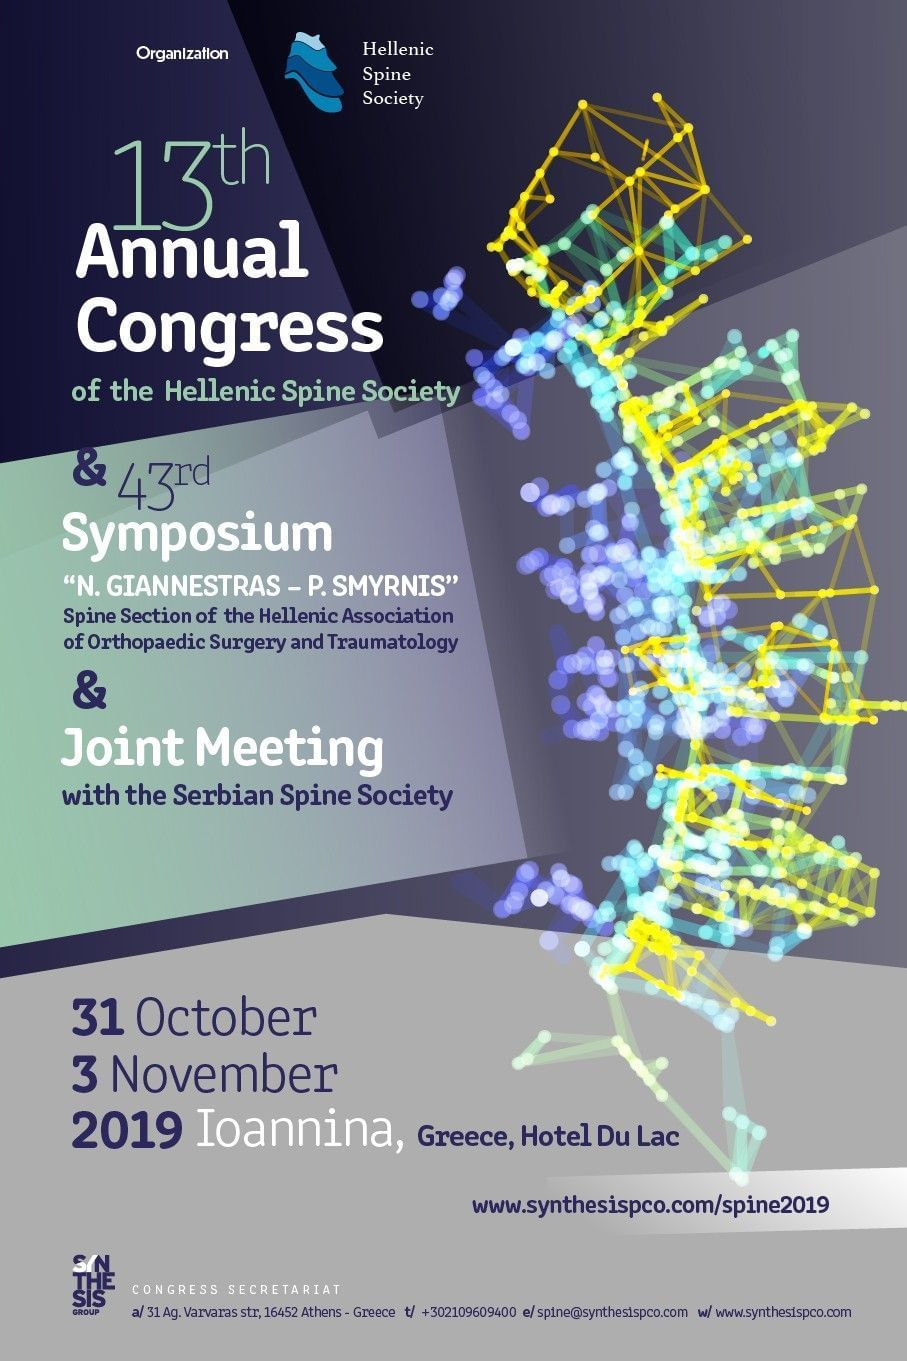 """13th ANNUAL CONGRESS OF THE HELLENIC SPINE SOCIETY & 43rd SYMPOSIUM """"N. GIANNESTRAS - P. SMYRNIS"""" & JOINT MEETING WITH THE SERBIAN SPINE SPINE SOCIETY & BULGARIAN SPINE ASSOCIATION"""